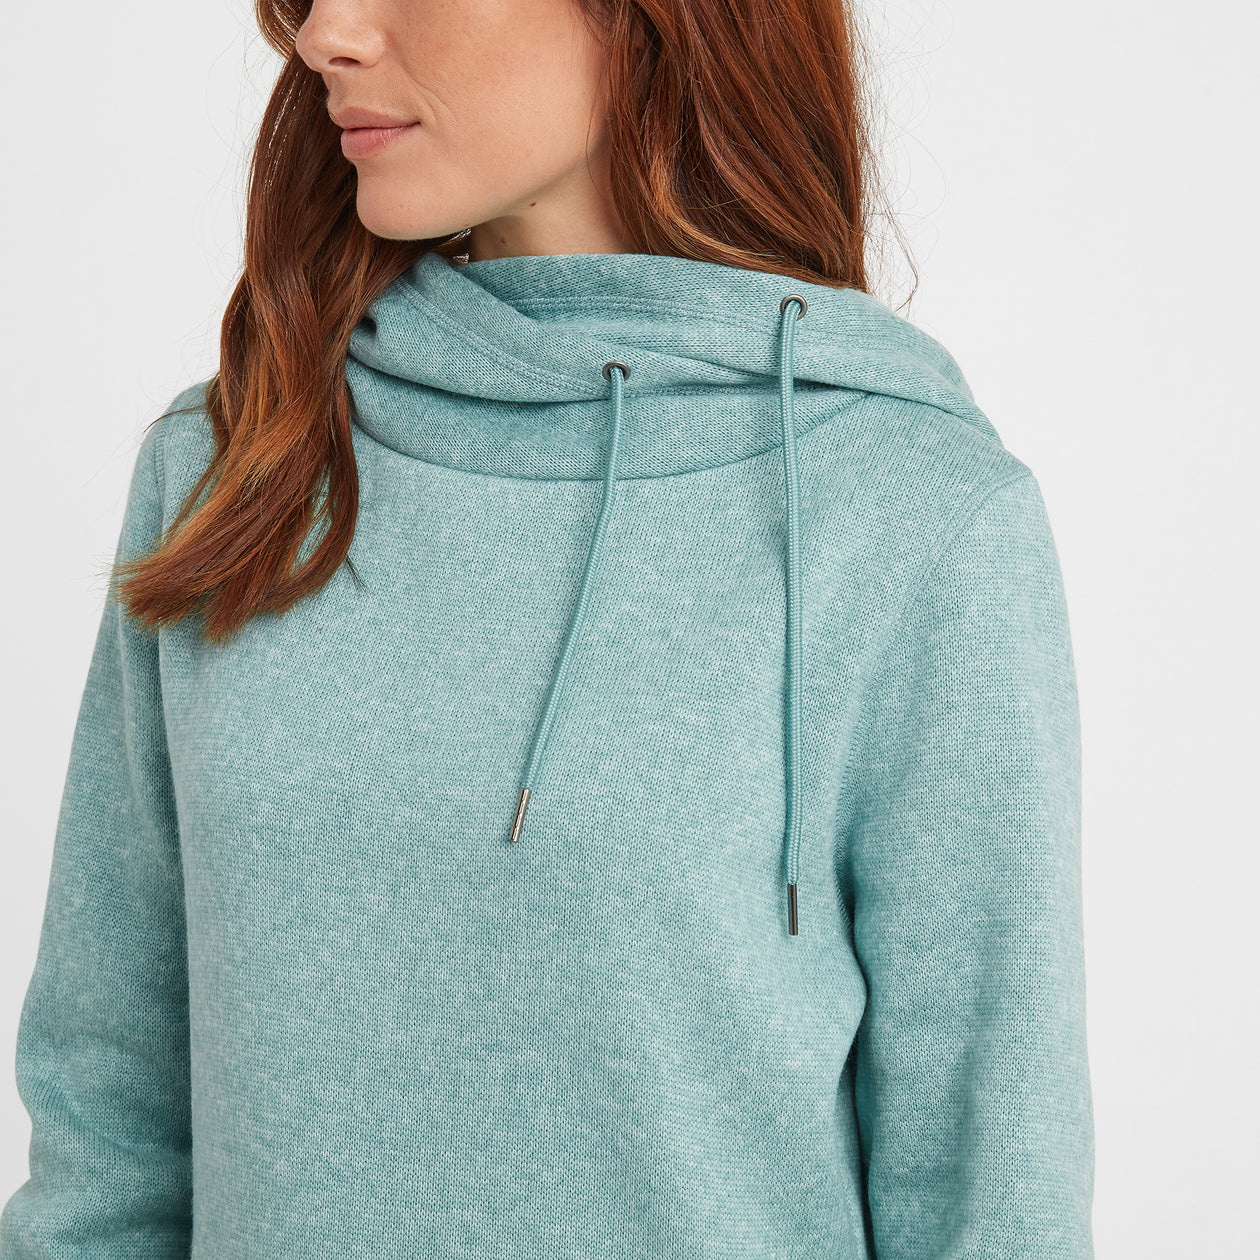 Acer Womens Knitlook Fleece Hoody - Nile Blue image 4